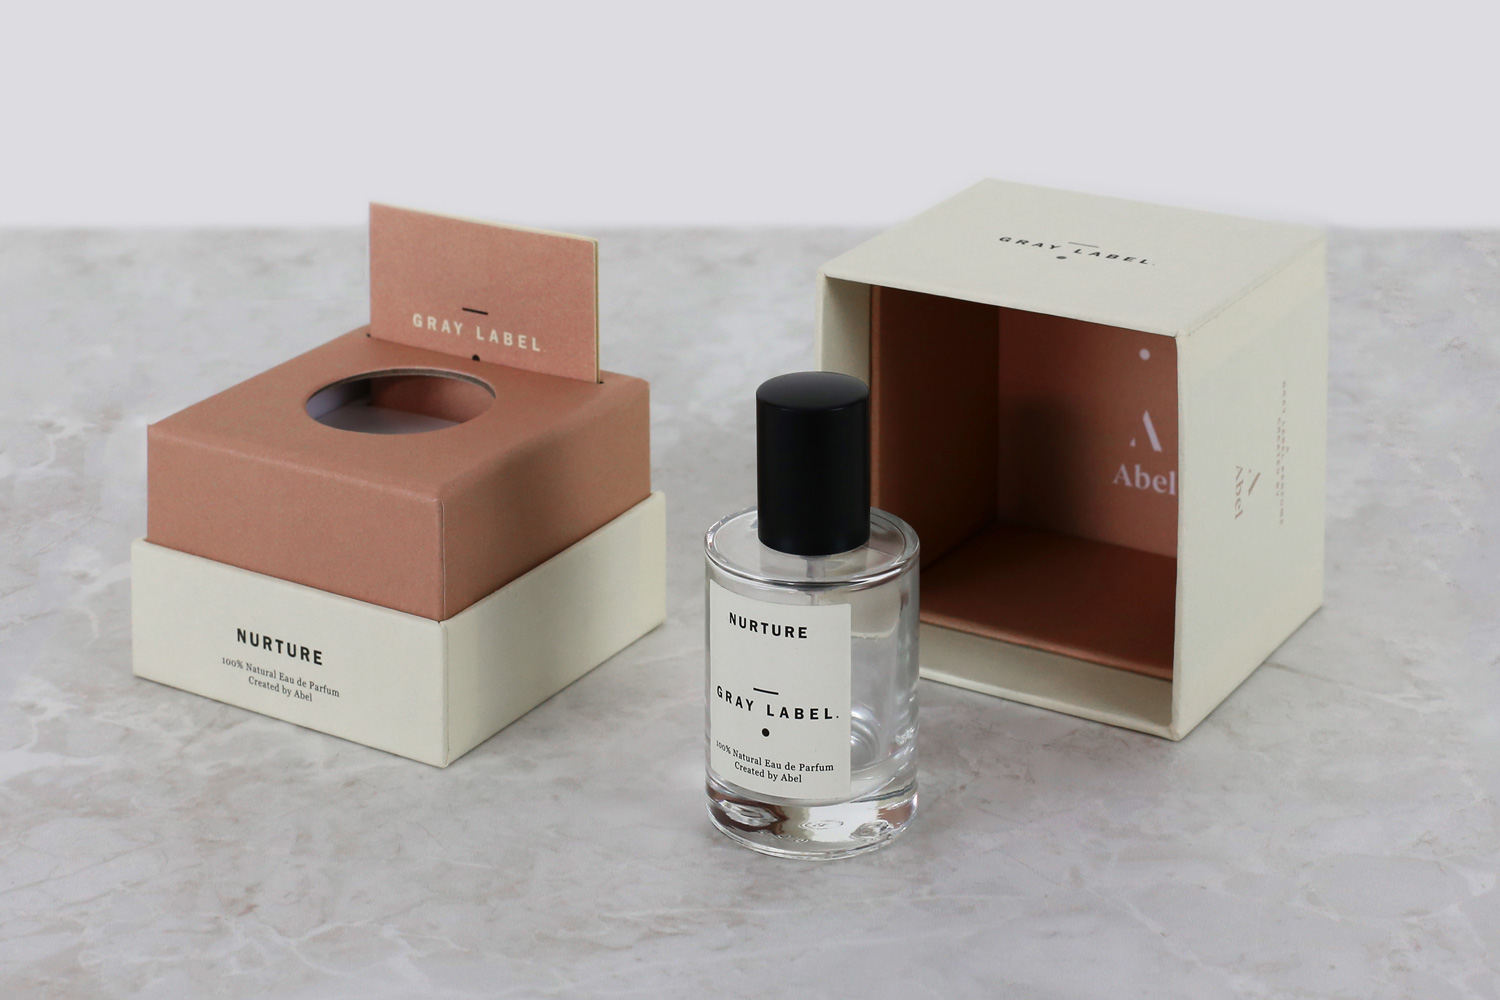 Progress Packaging Beauty Fragrance Bottle Glass Retail Luxury Gift Branded Environmentally Friendly Eco Mindfully Responsibly Sourced Bespoke Creative Manufacture Production